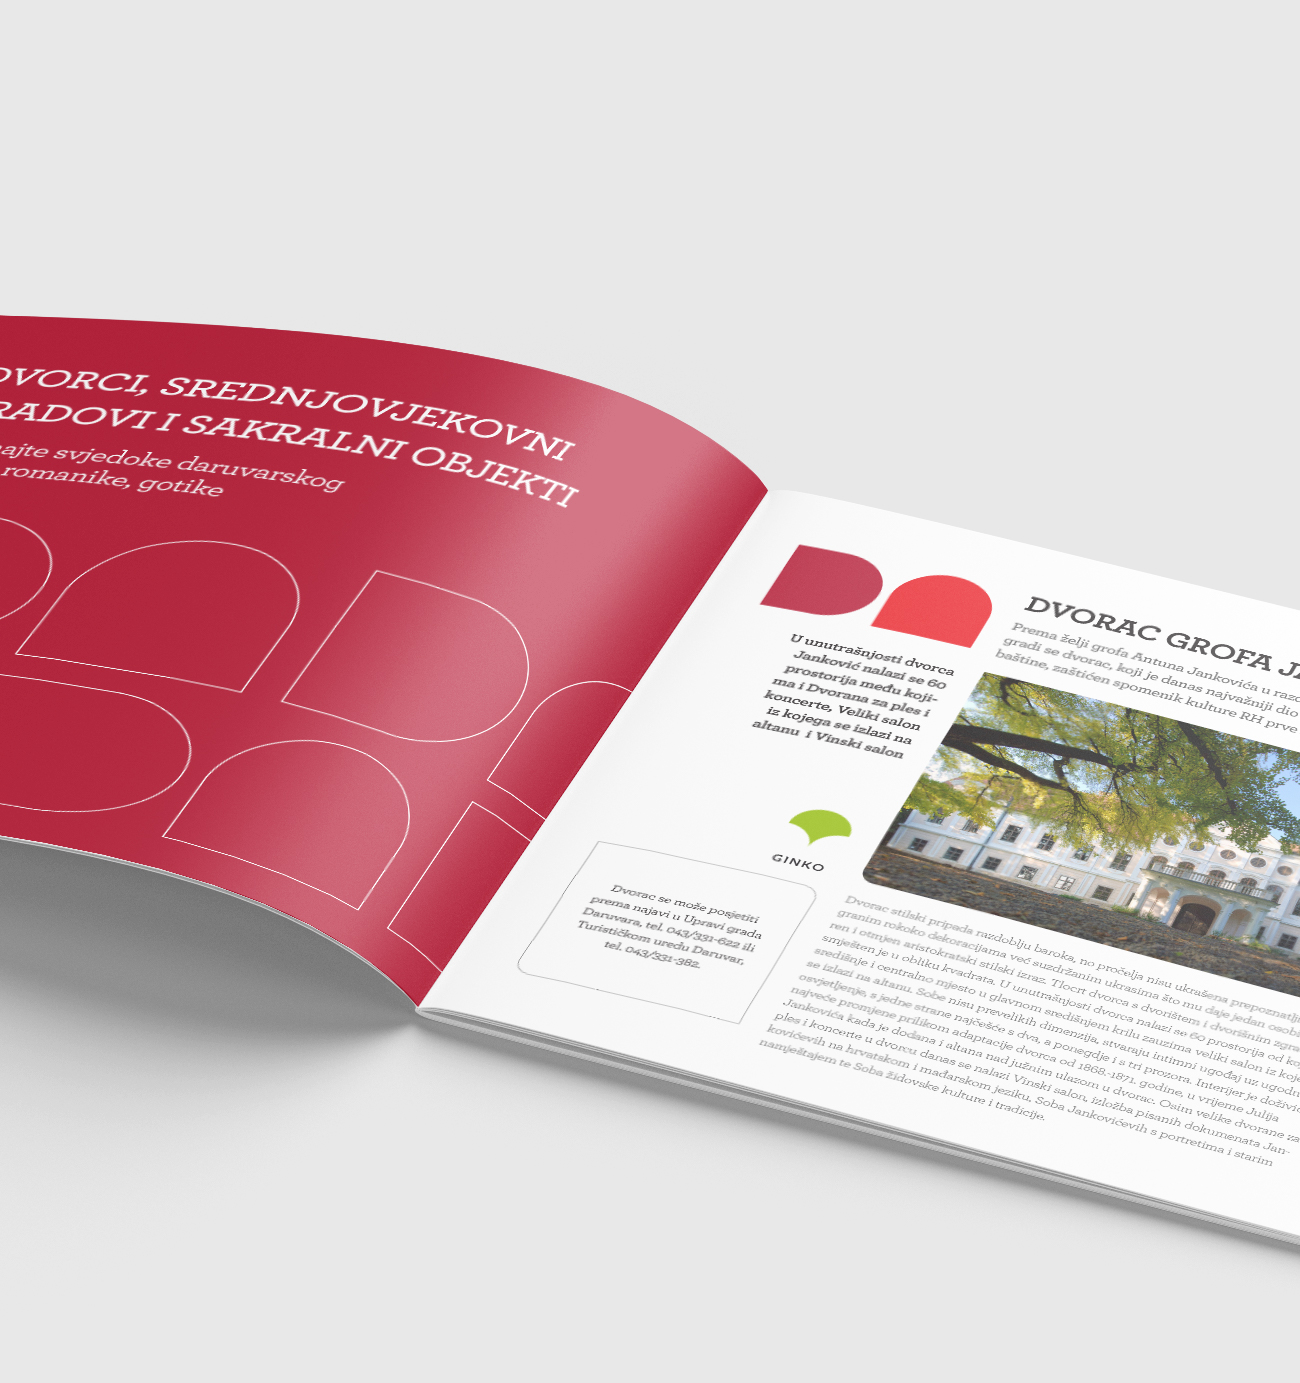 Brochure design, layout of inner pages